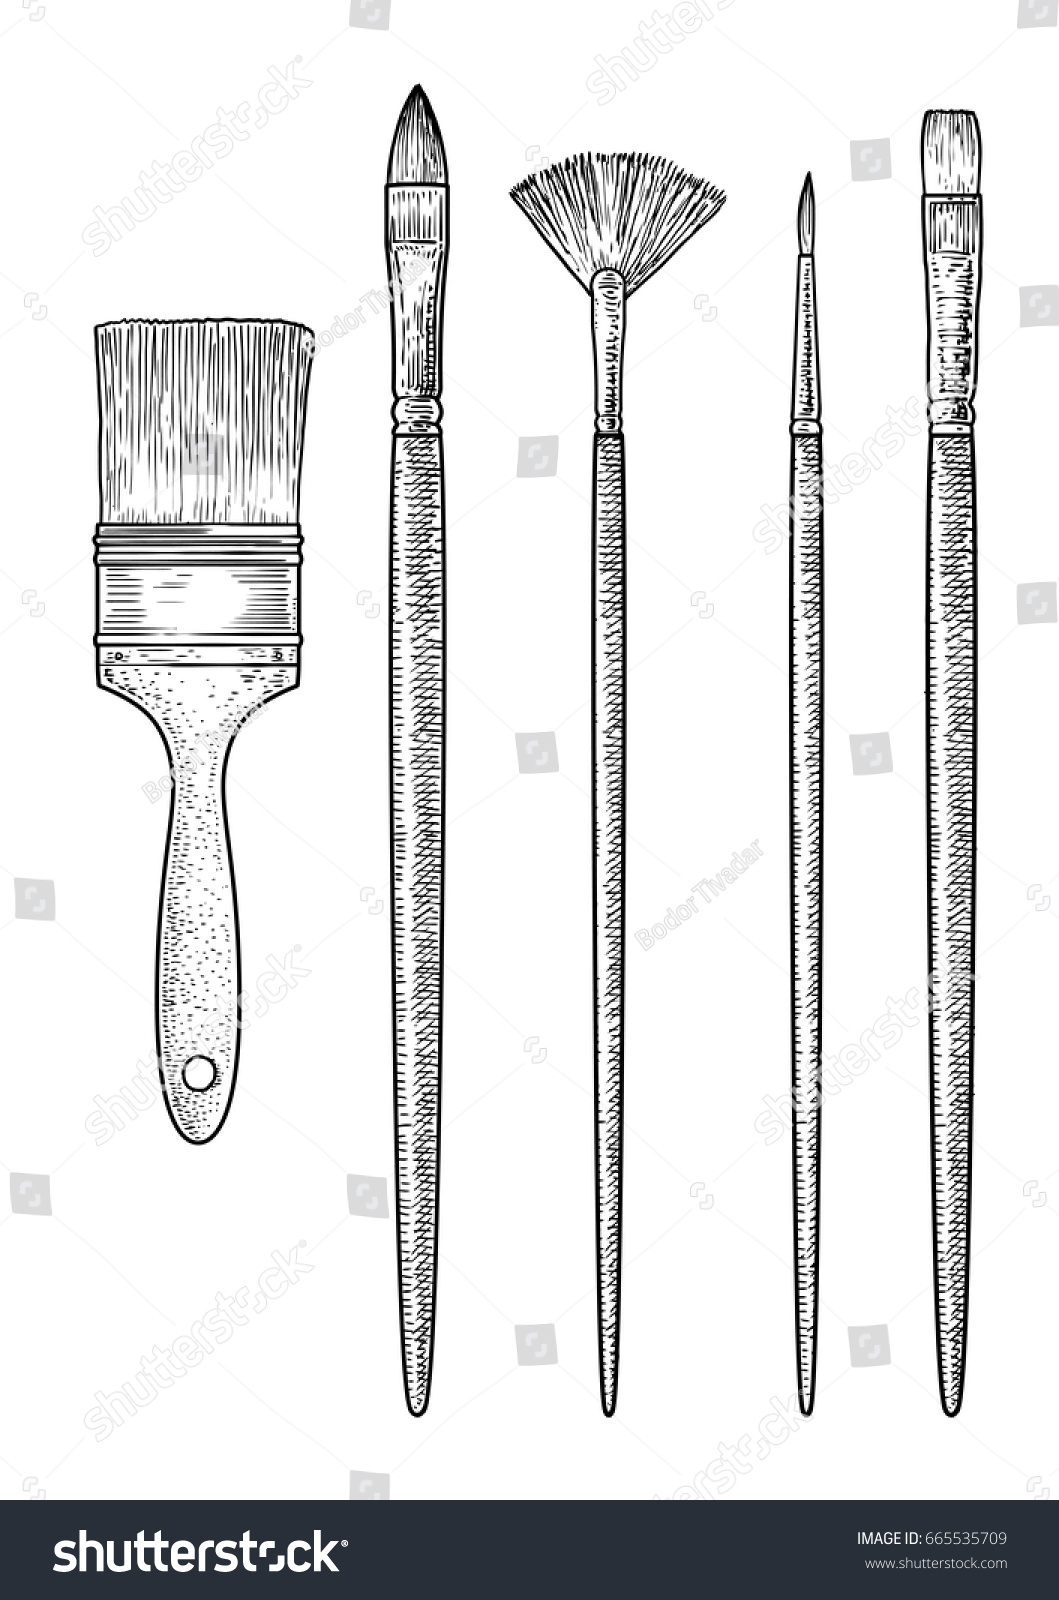 Line Art Brush By Jimro : Brush collection illustration drawing engraving ink stock